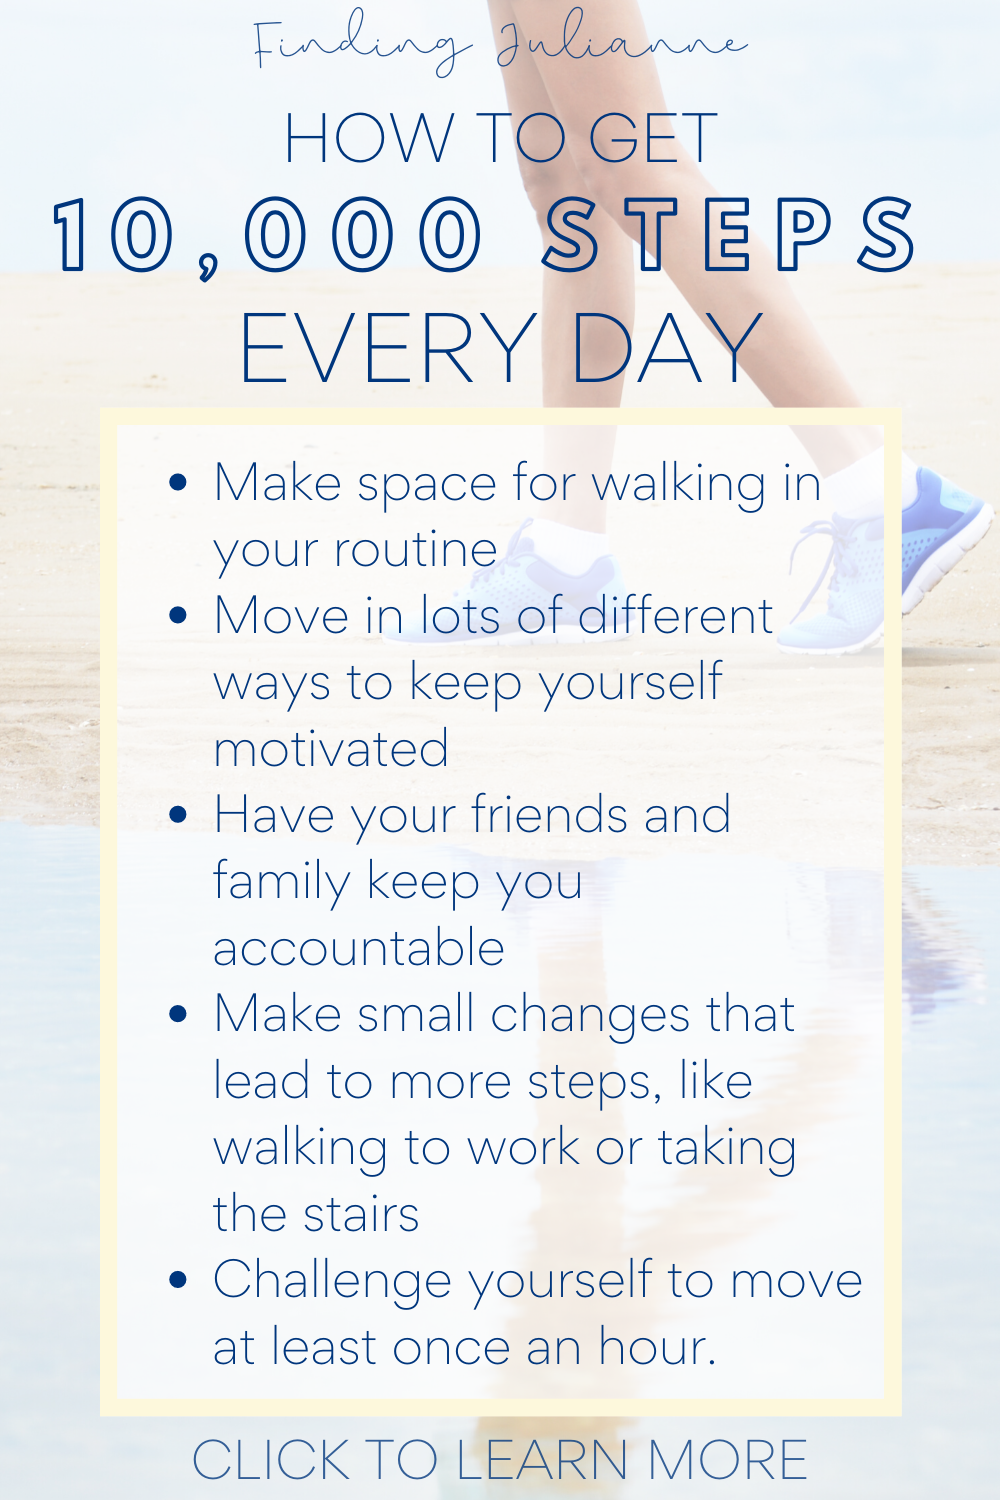 If you want to improve your fitness, lose weight, or simply enjoy all the benefits of walking, you need to MOVE! Here are my top tips to hit your 10000 step a day goal on your fitbit or step counter. Click to learn more about how you can join my step challenge! #10000steps #fitness #10000stepsaday #fitbit